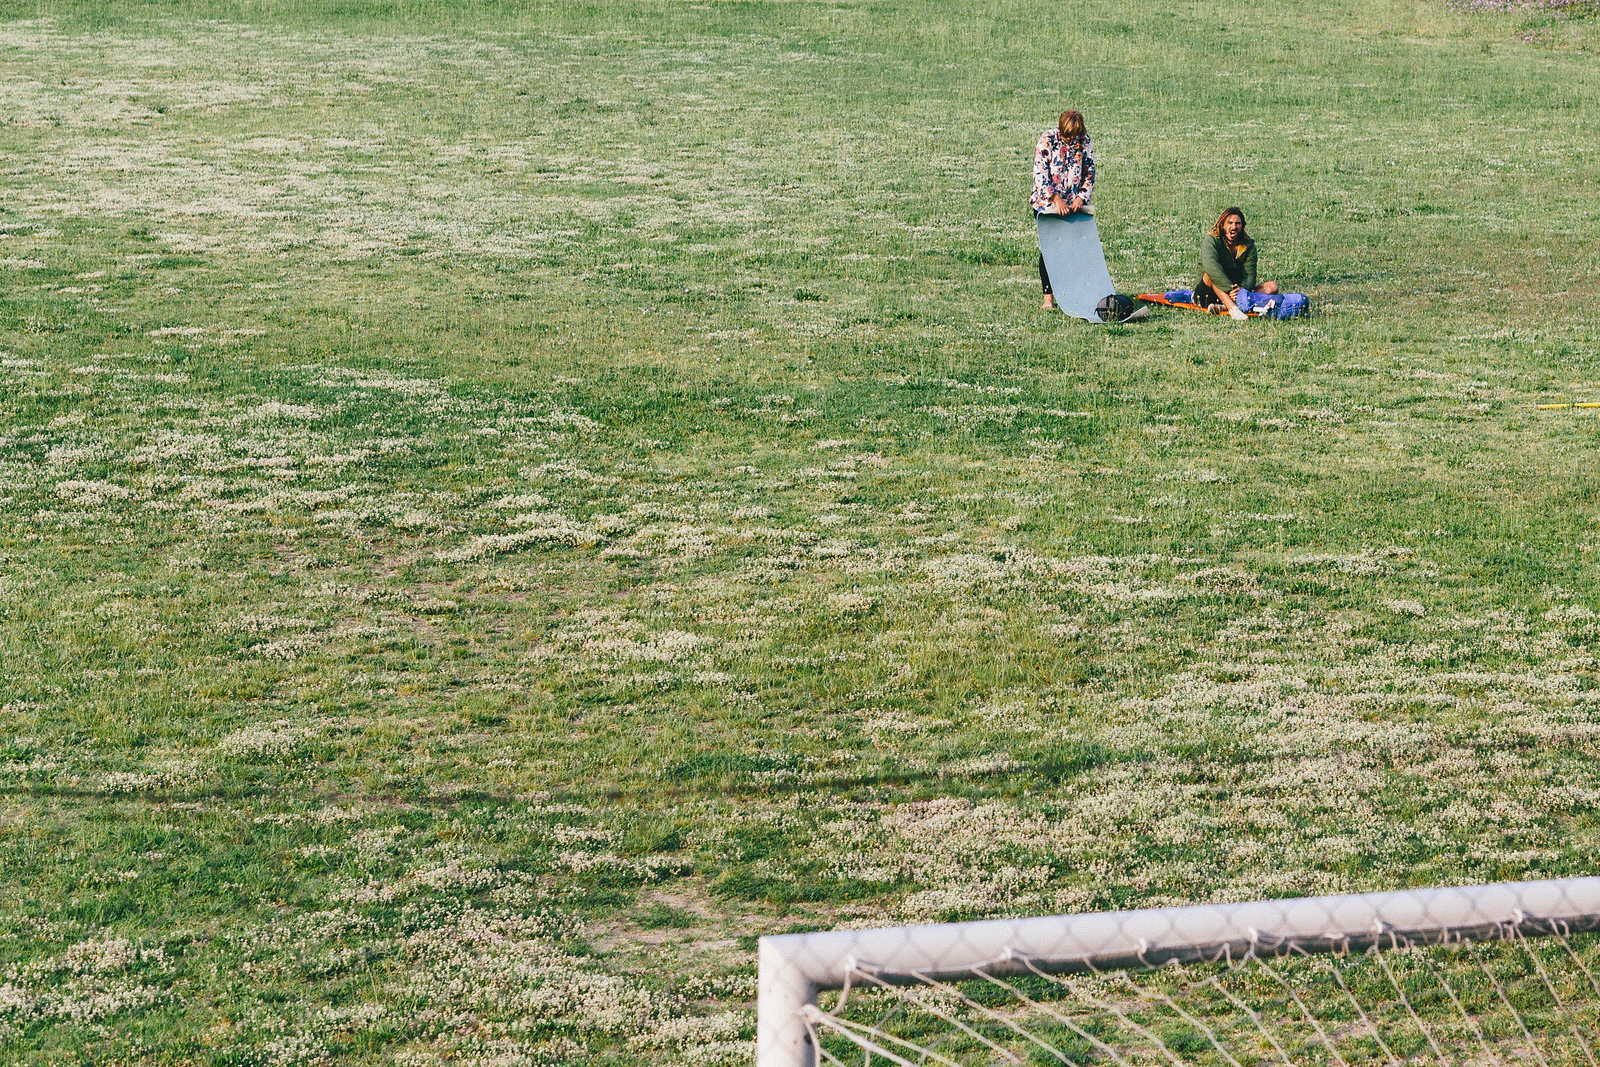 """Sleeping """"separatists"""" - Wiktoria (Poland) and Lucas (Argentina) spent their night on the middle of the football field."""